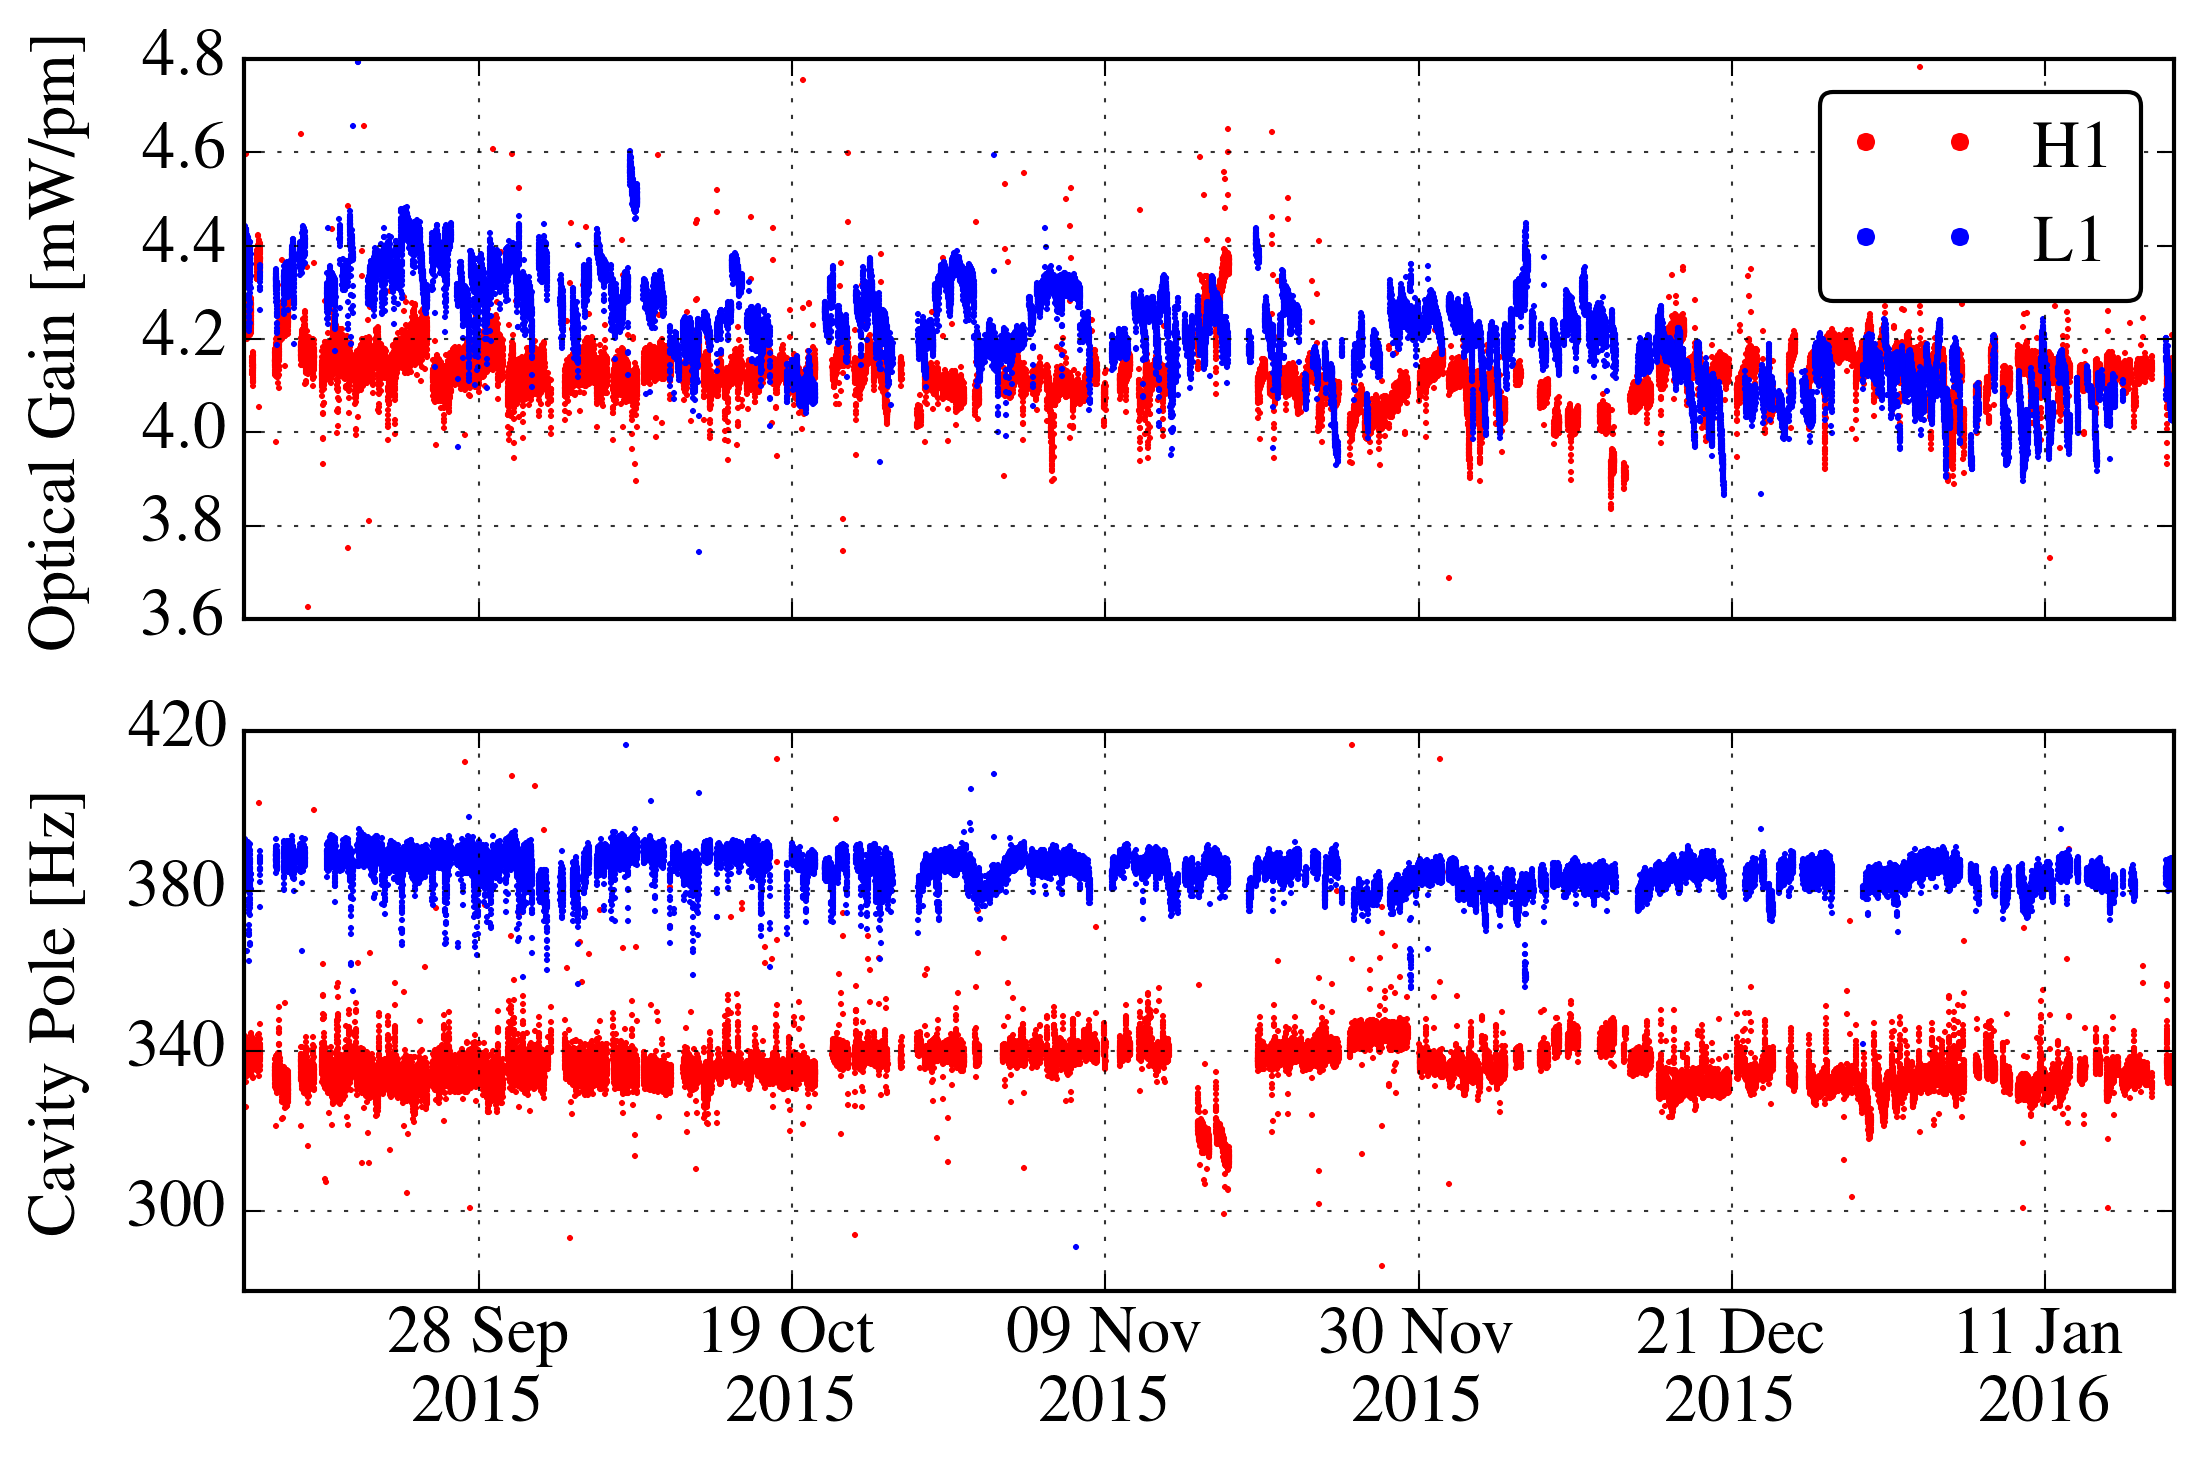 Time-varying response of the Advanced LIGO detectors. The top panel shows the optical gain variations over a time span of one month, whereas the bottom panel shows the variations of the differential coupled cavity pole frequency over the same time span. The blue traces are for the LIGO Livingston Observatory (L1) and the red traces for the LIGO Hanford Observatory (H1).